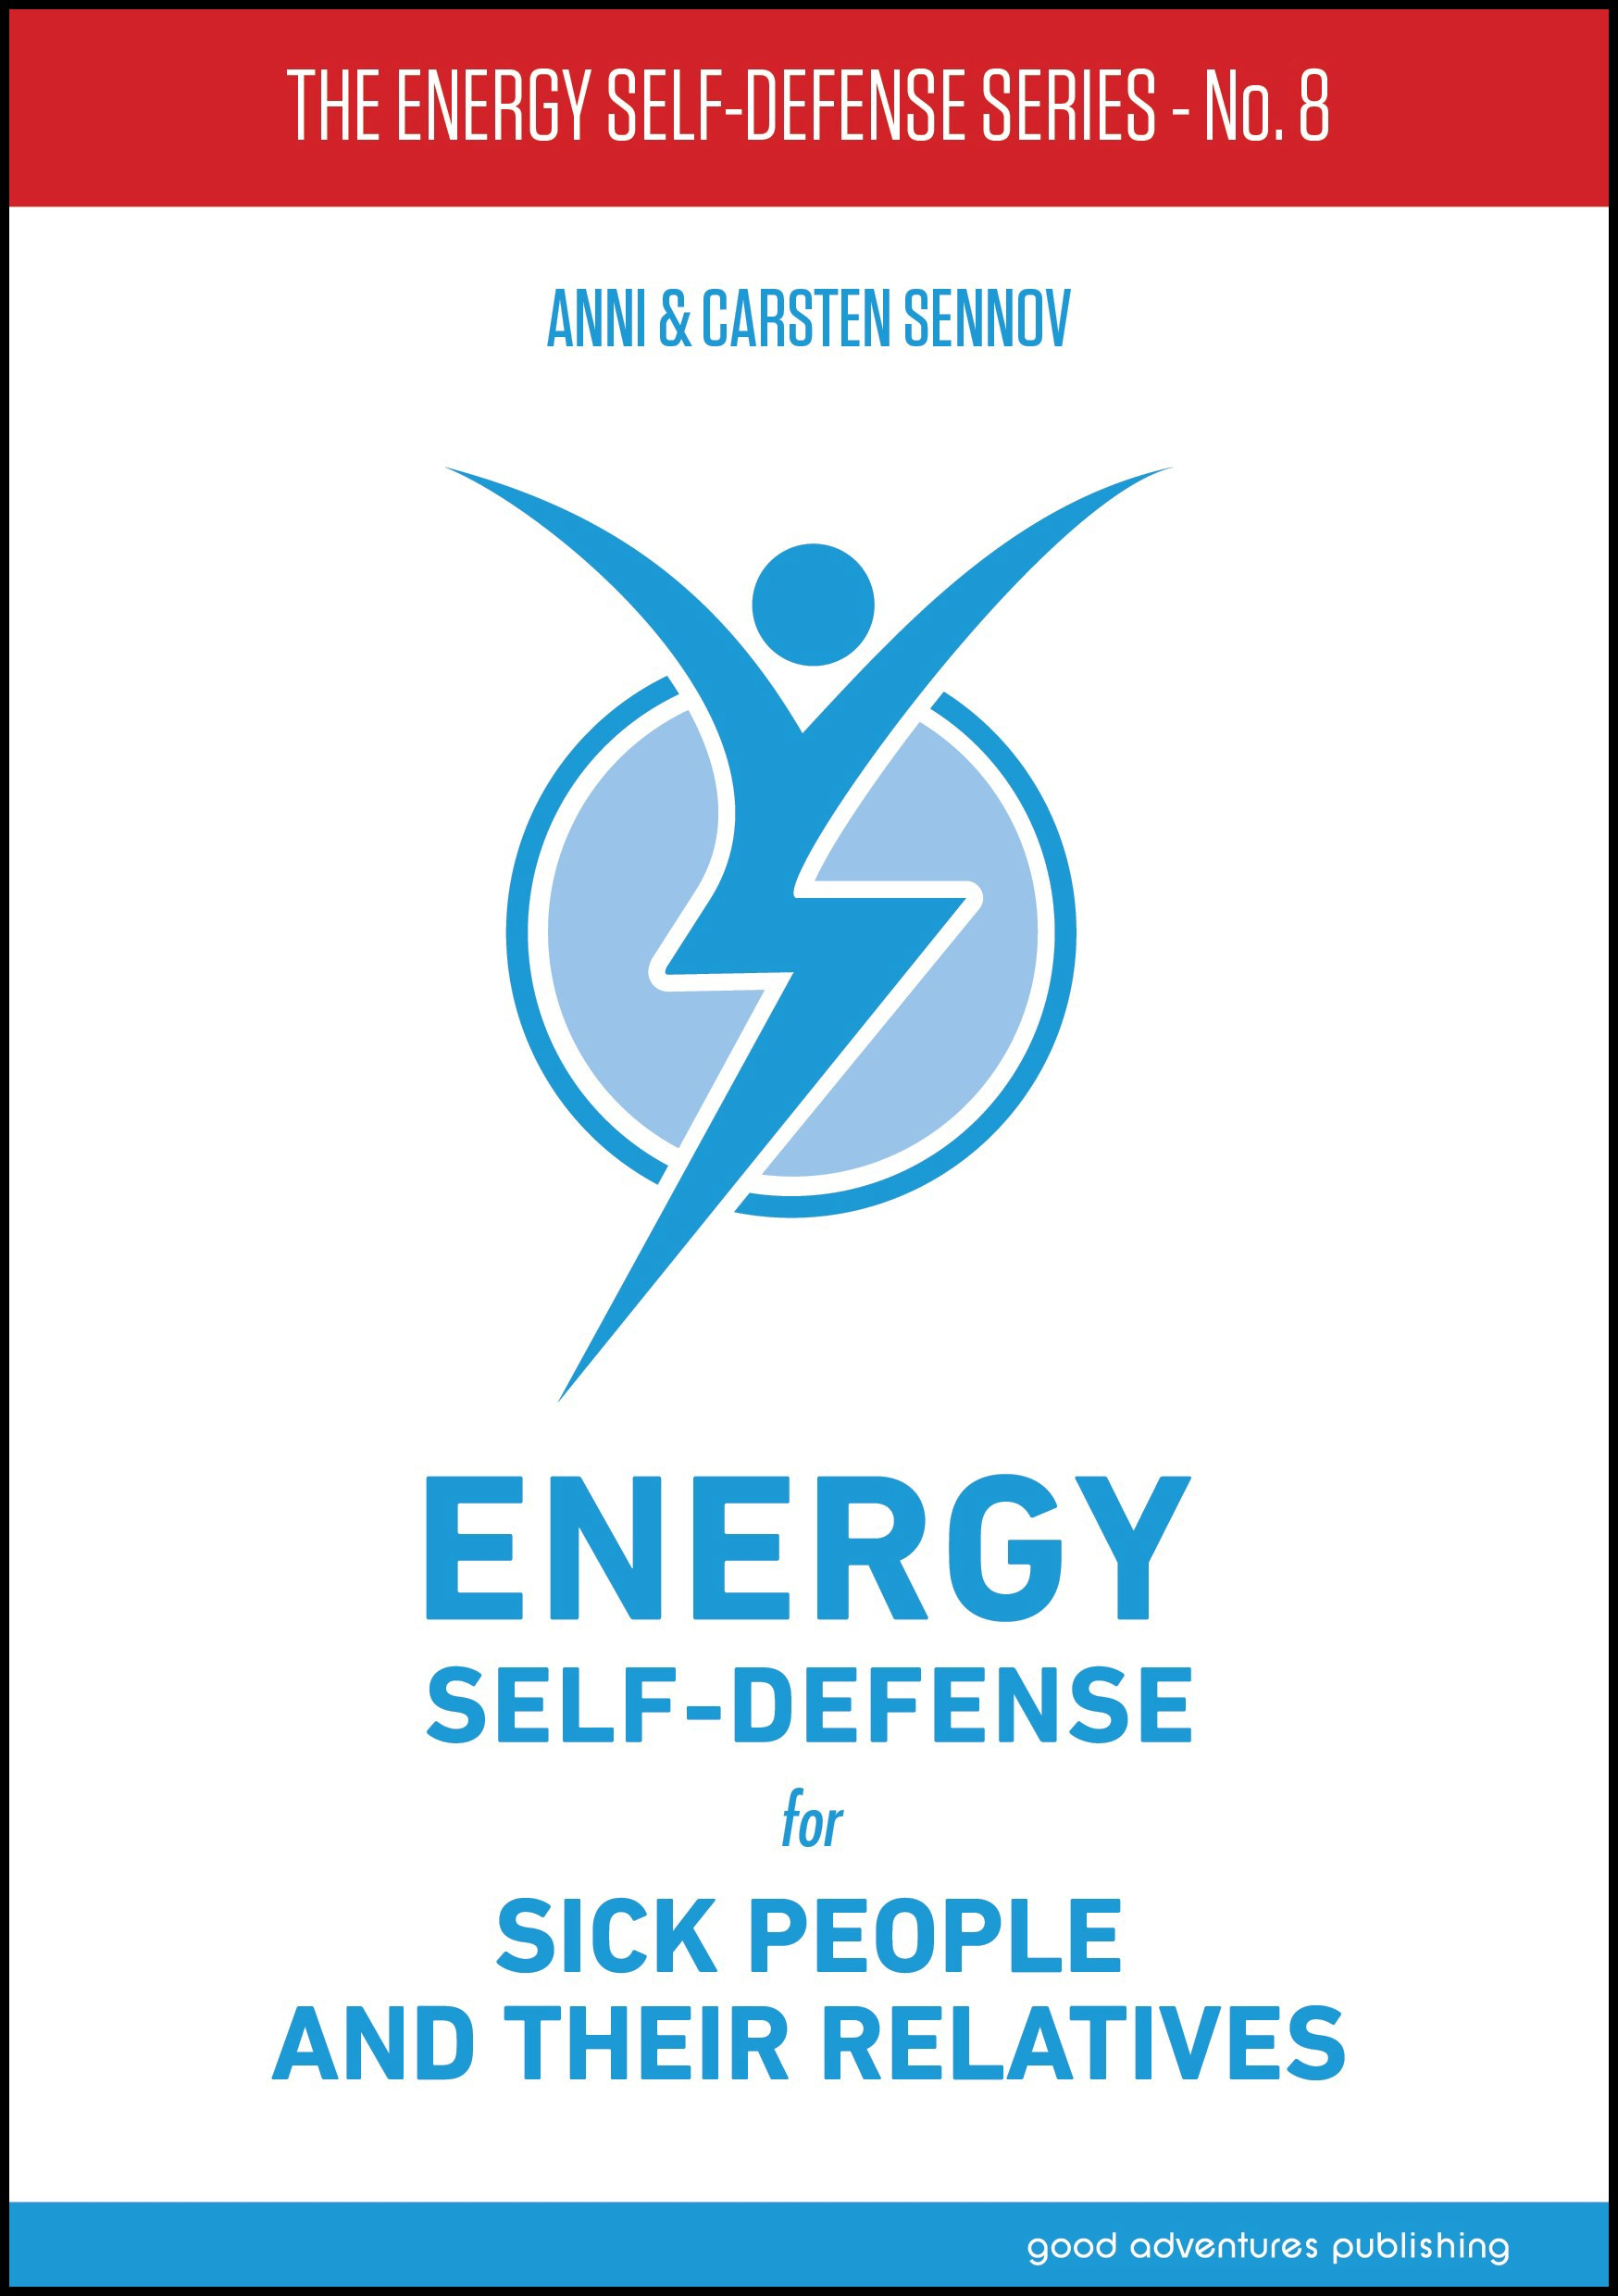 Energy Self-Defense for Sick People and Their Relatives